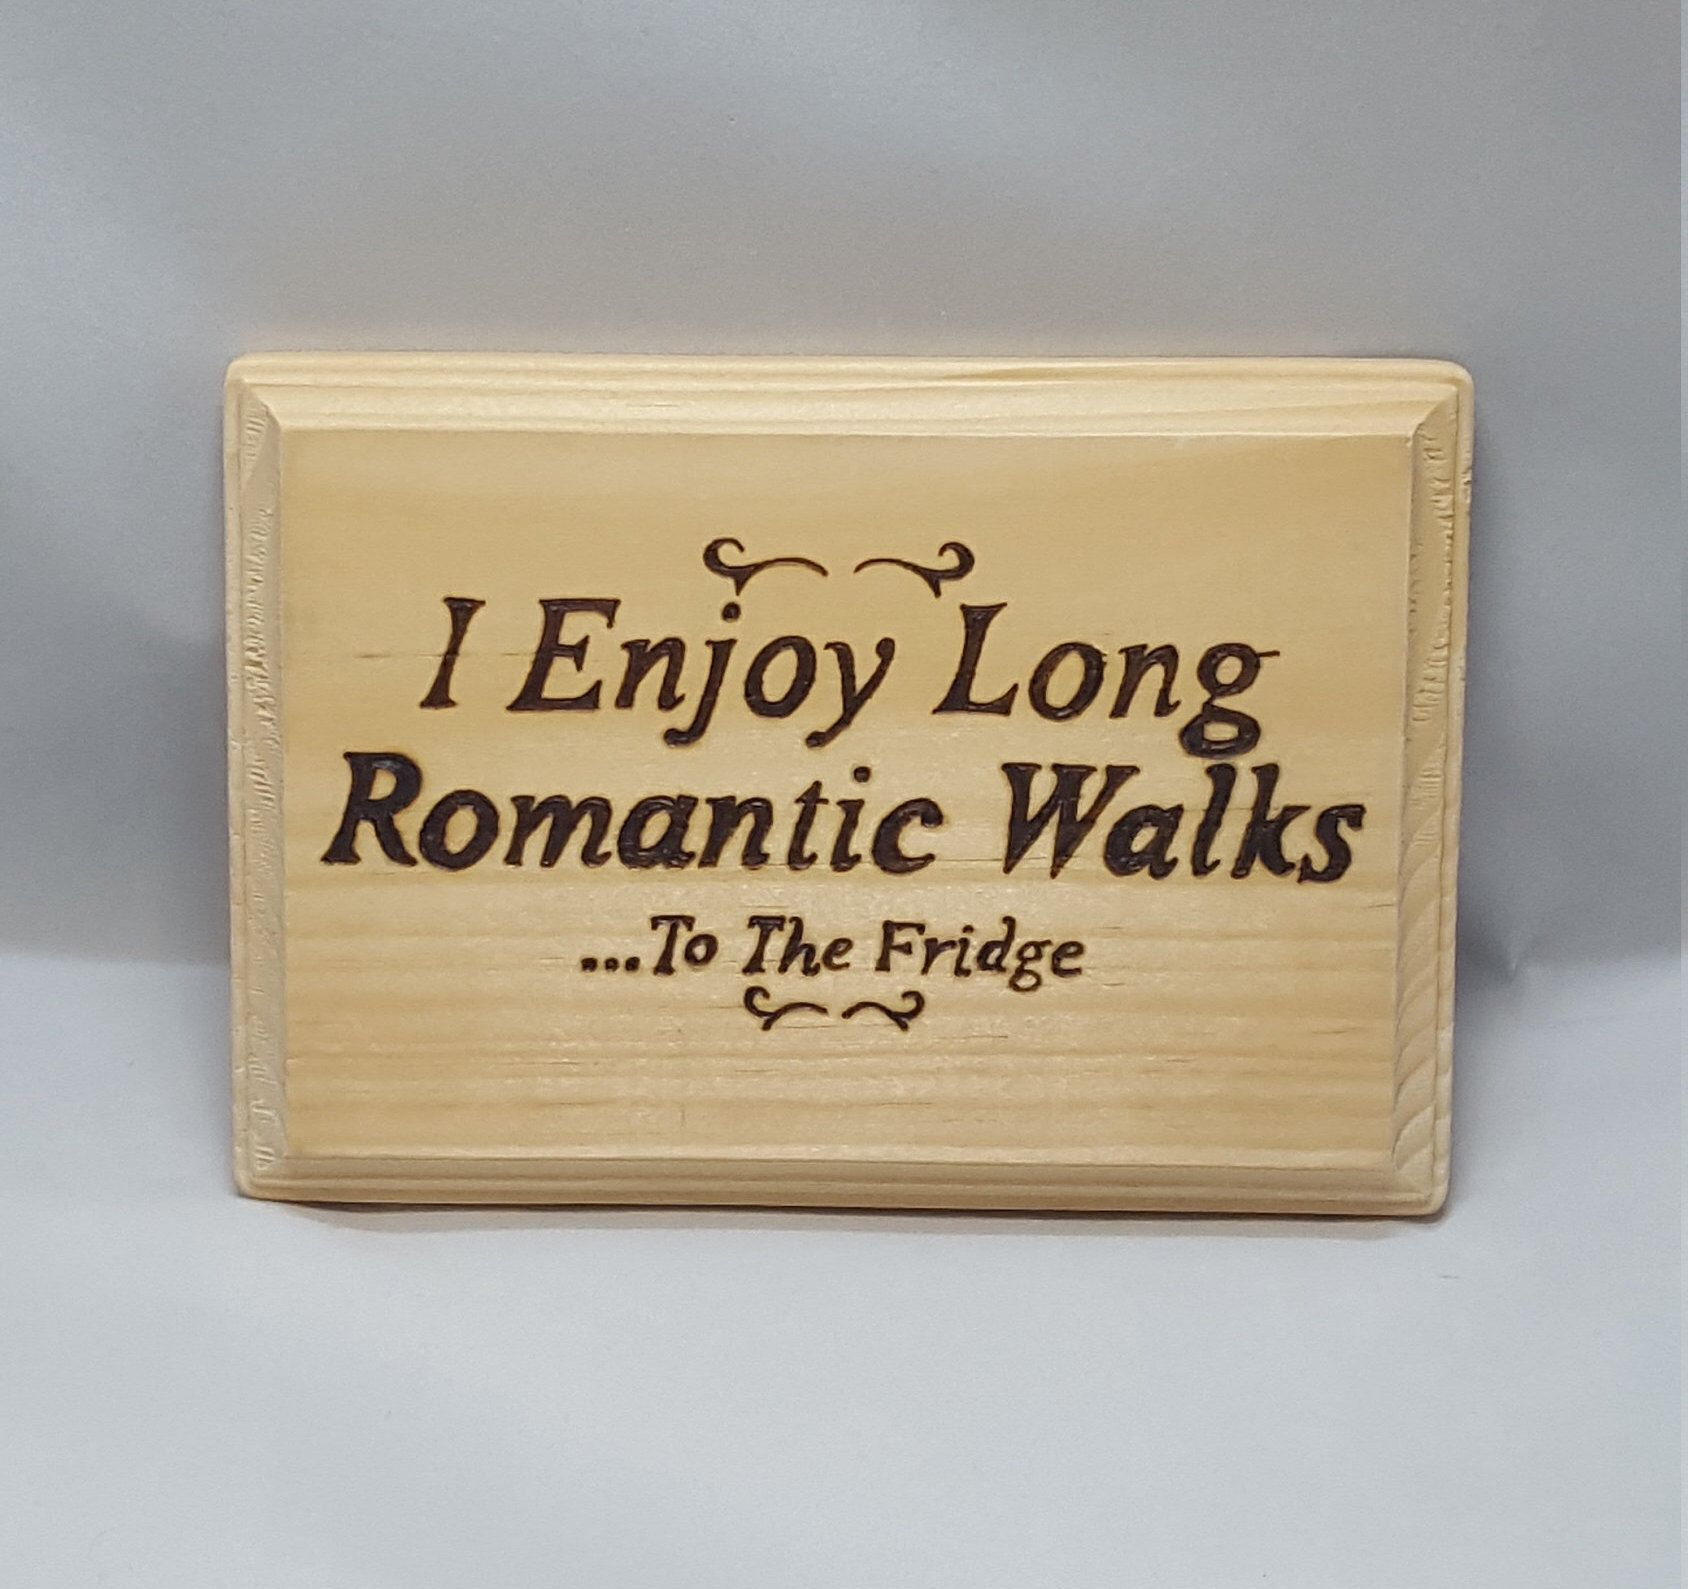 Romantic walks, funny saying, wall plaque, humor sign, wall art ...